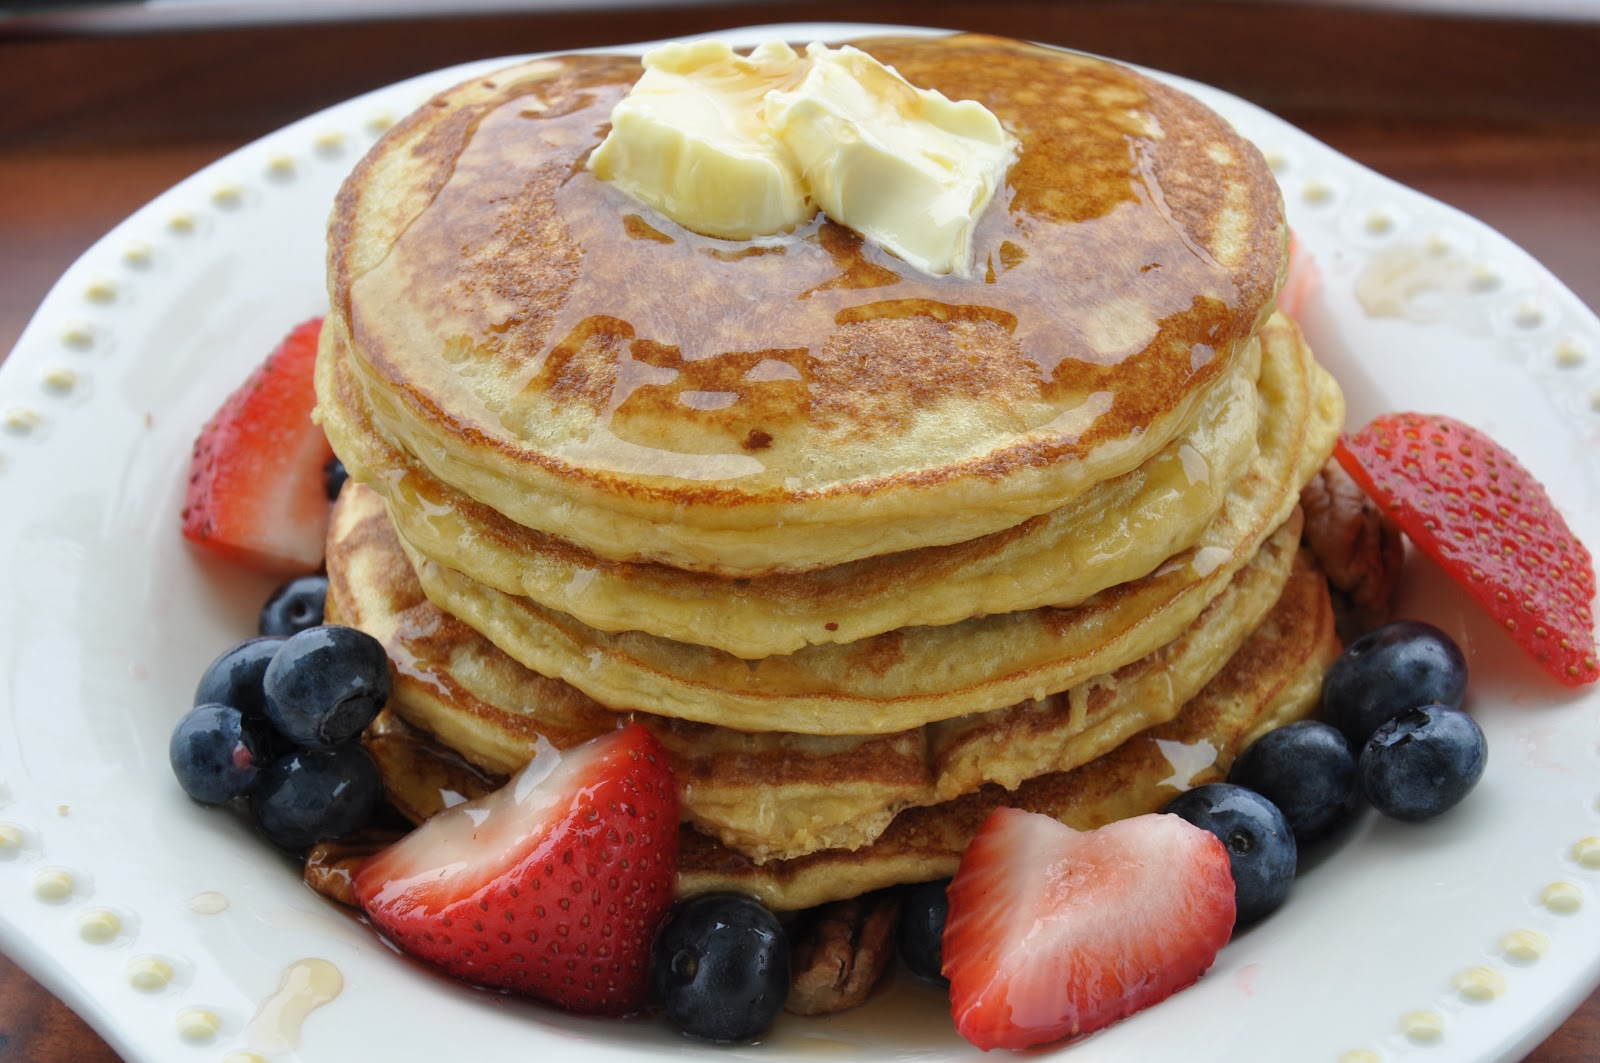 Secrets of a foodie saturday morning pancakes saturday morning pancakes 4 eggs 1 cup of almond milk or coconut milk i use unsweetened almond milk from almond breeze 2 teaspoons of vanilla extract ccuart Gallery